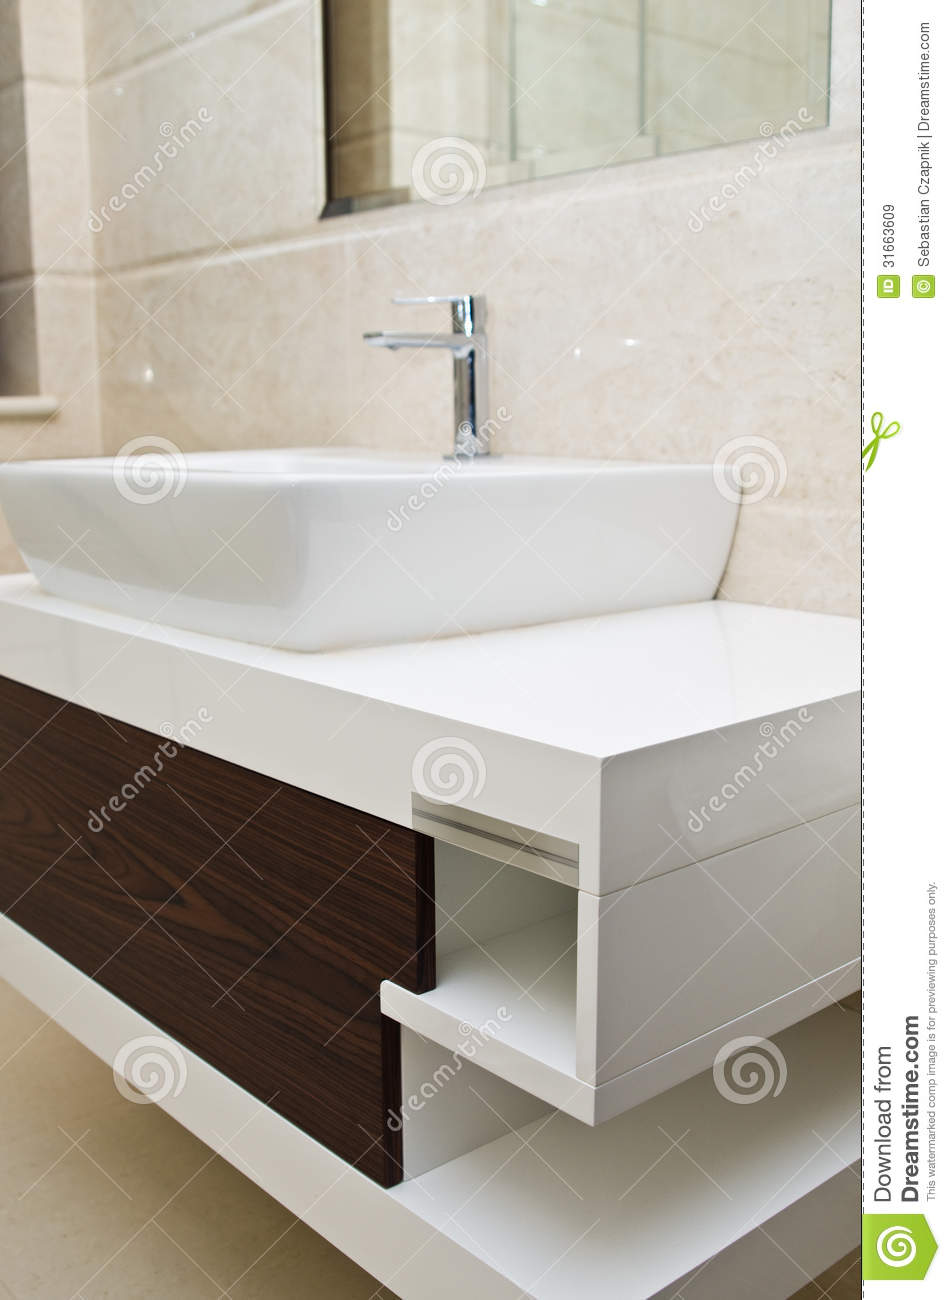 Bathroom Sink And Cabinet Bathroom Sink And Cabinet Royalty Free Stock Images Image 31663609